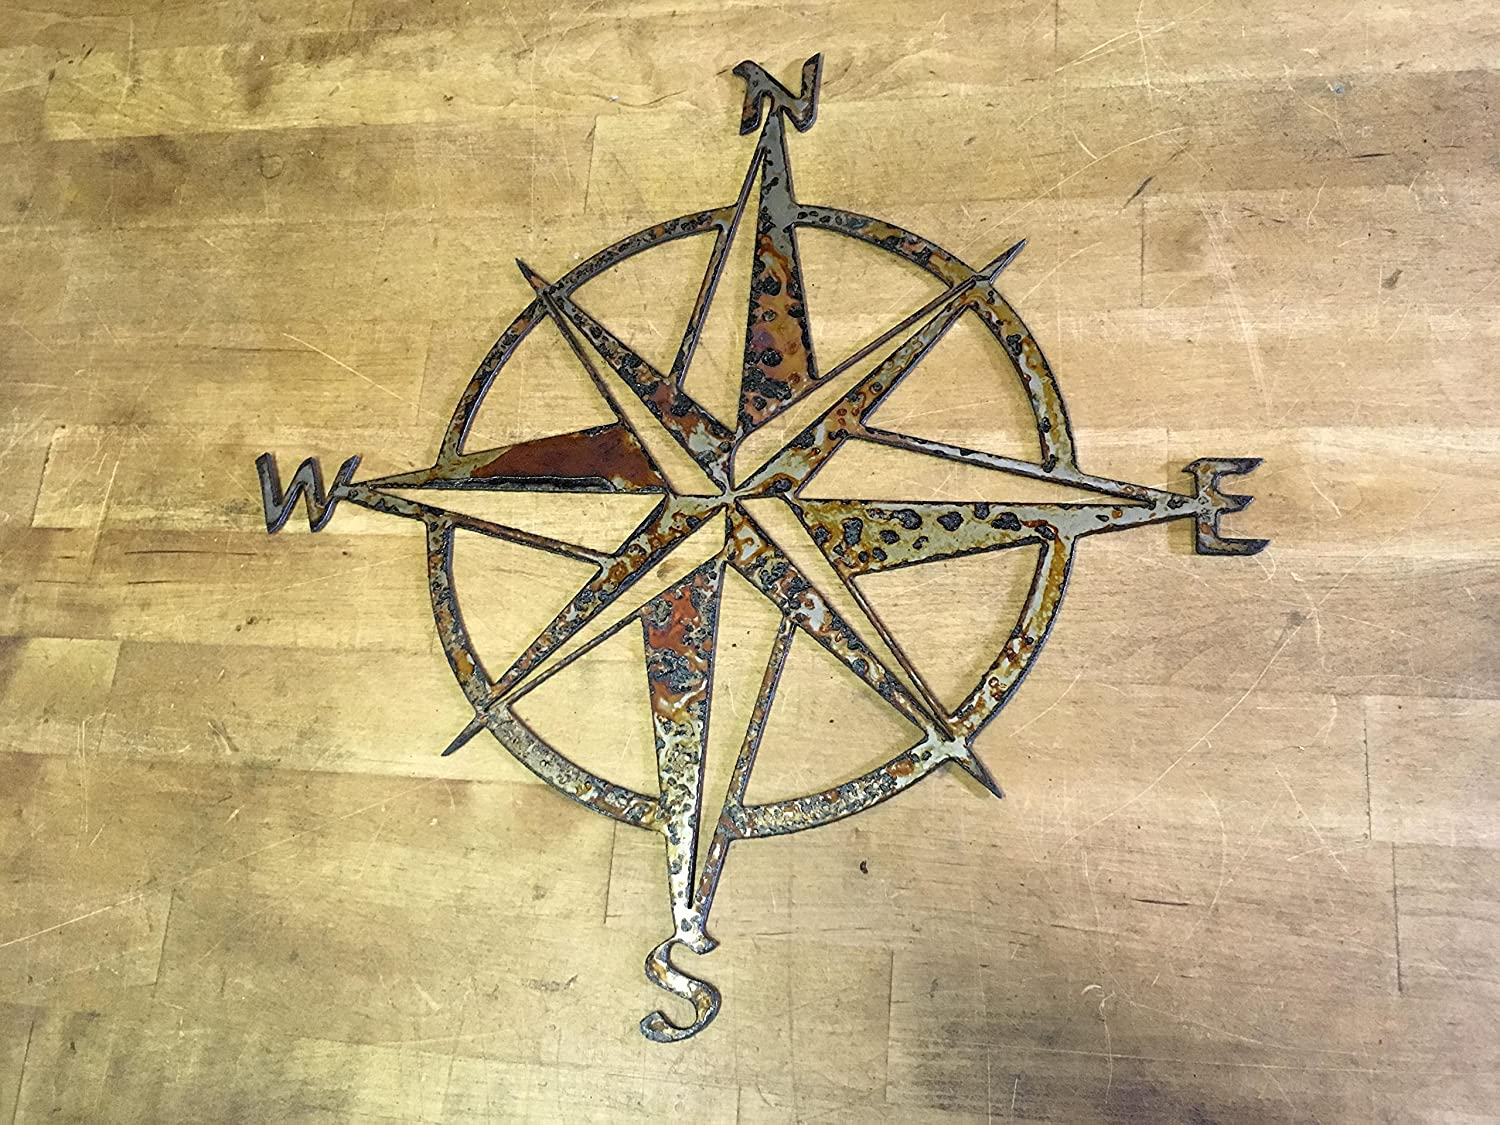 Amazon.com: Nautical Star Compass Steel Wall Decor wall hanging art ...